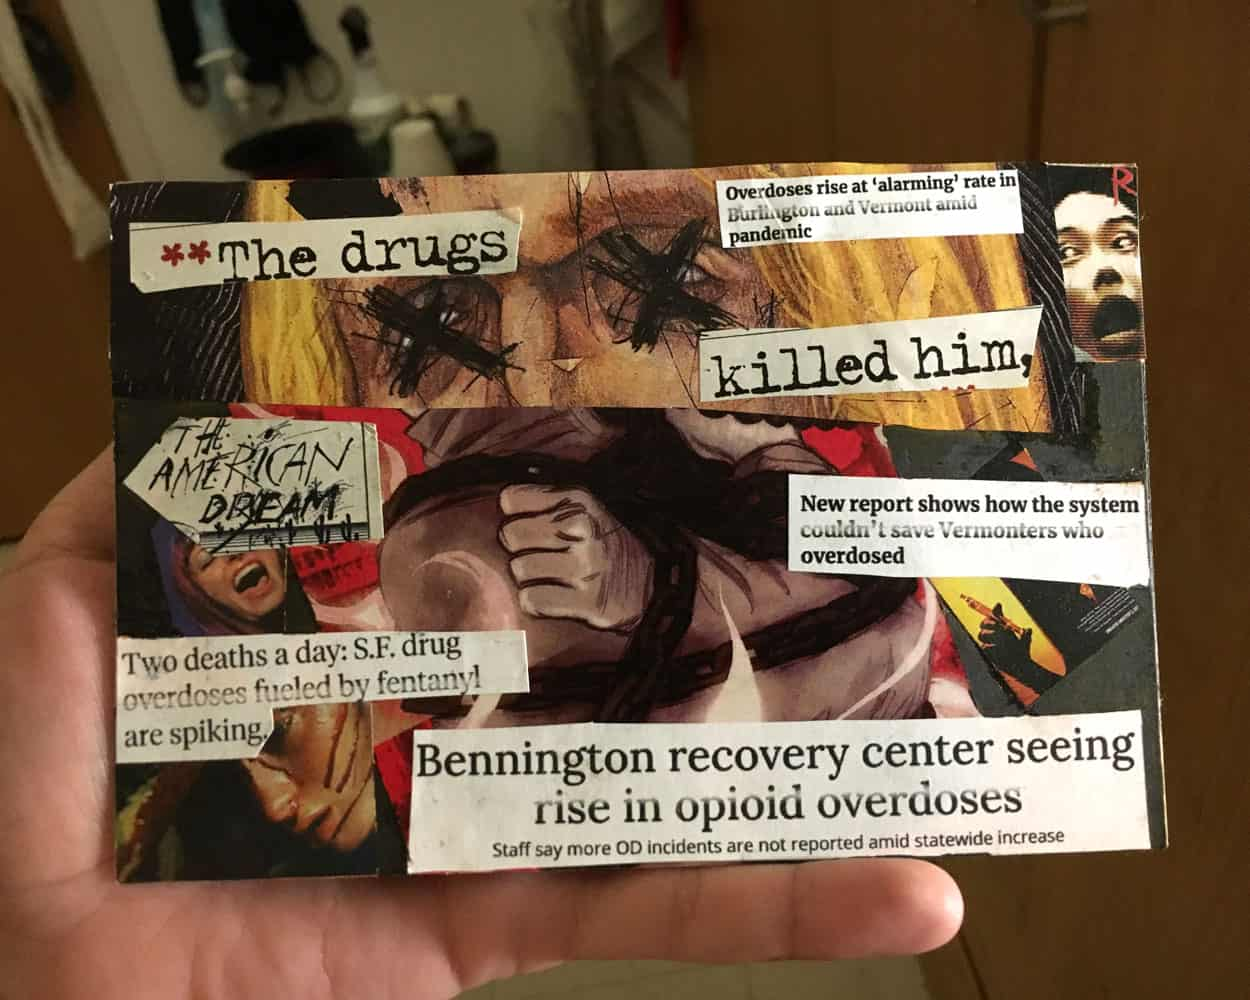 A collage postcard with a n image of a person with their eyes scratched out and text about opioid deaths.